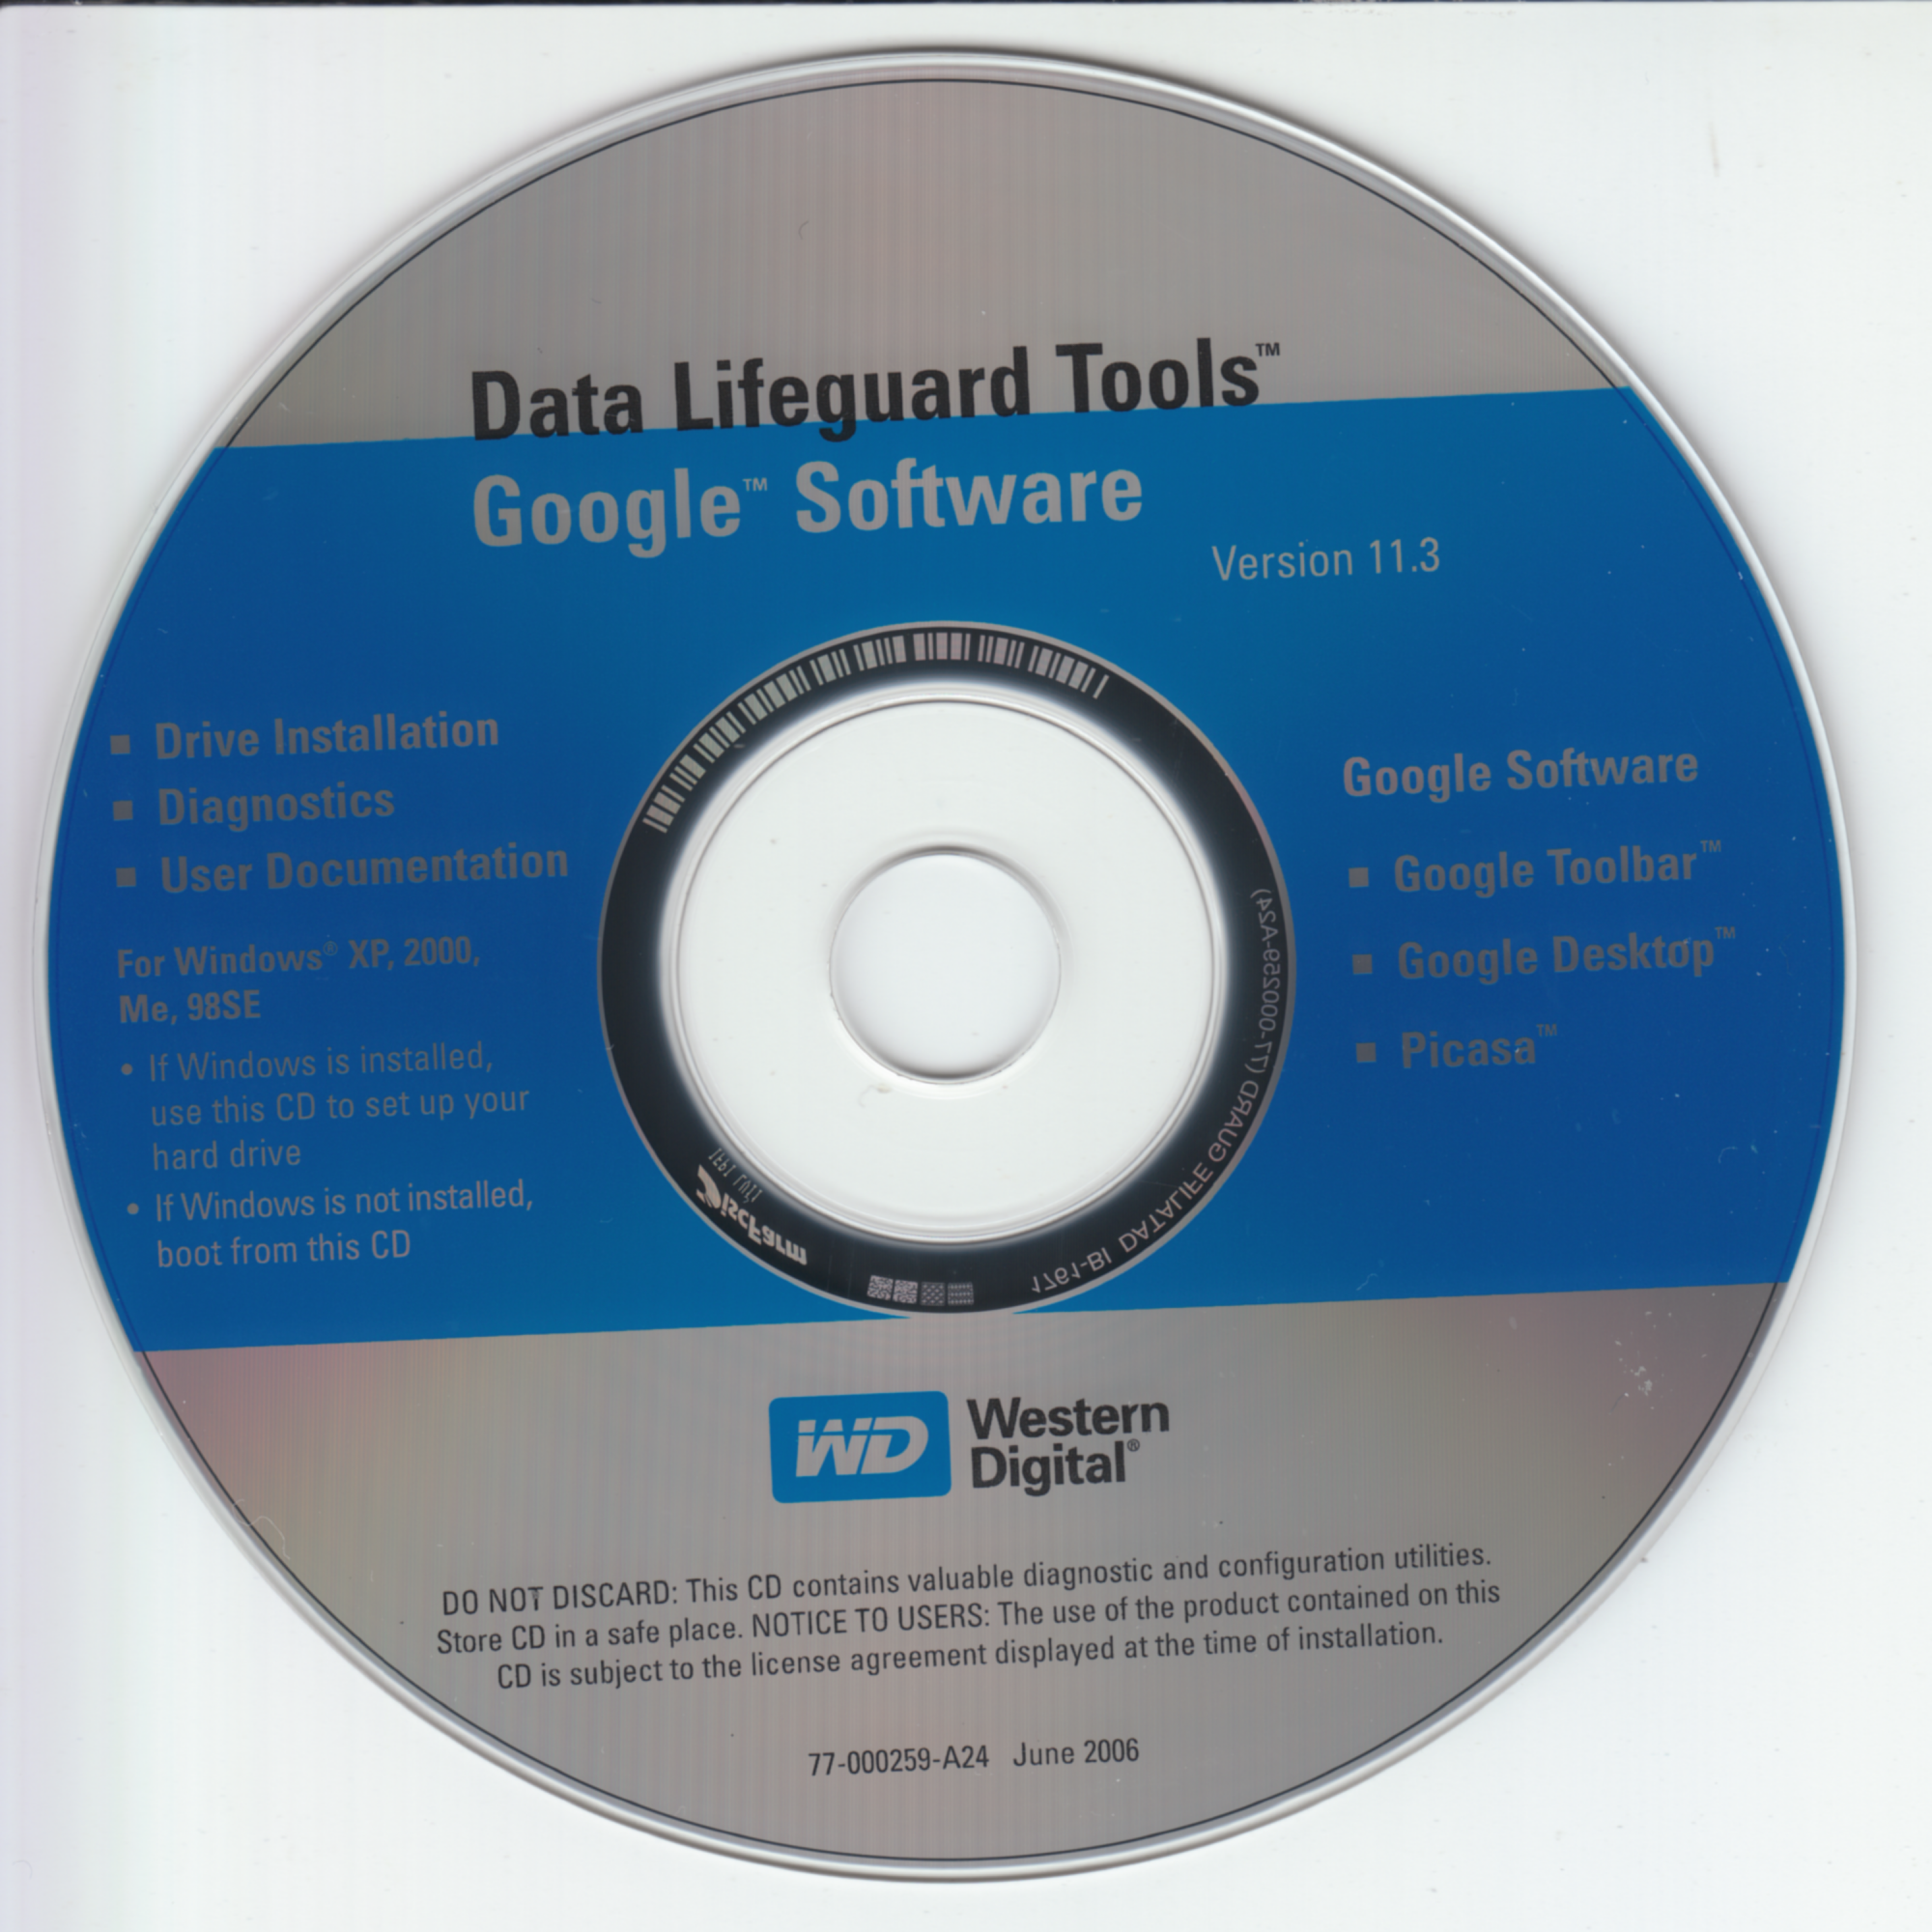 WD Data Lifeguard Tools v11.3 (77-000259-A24)